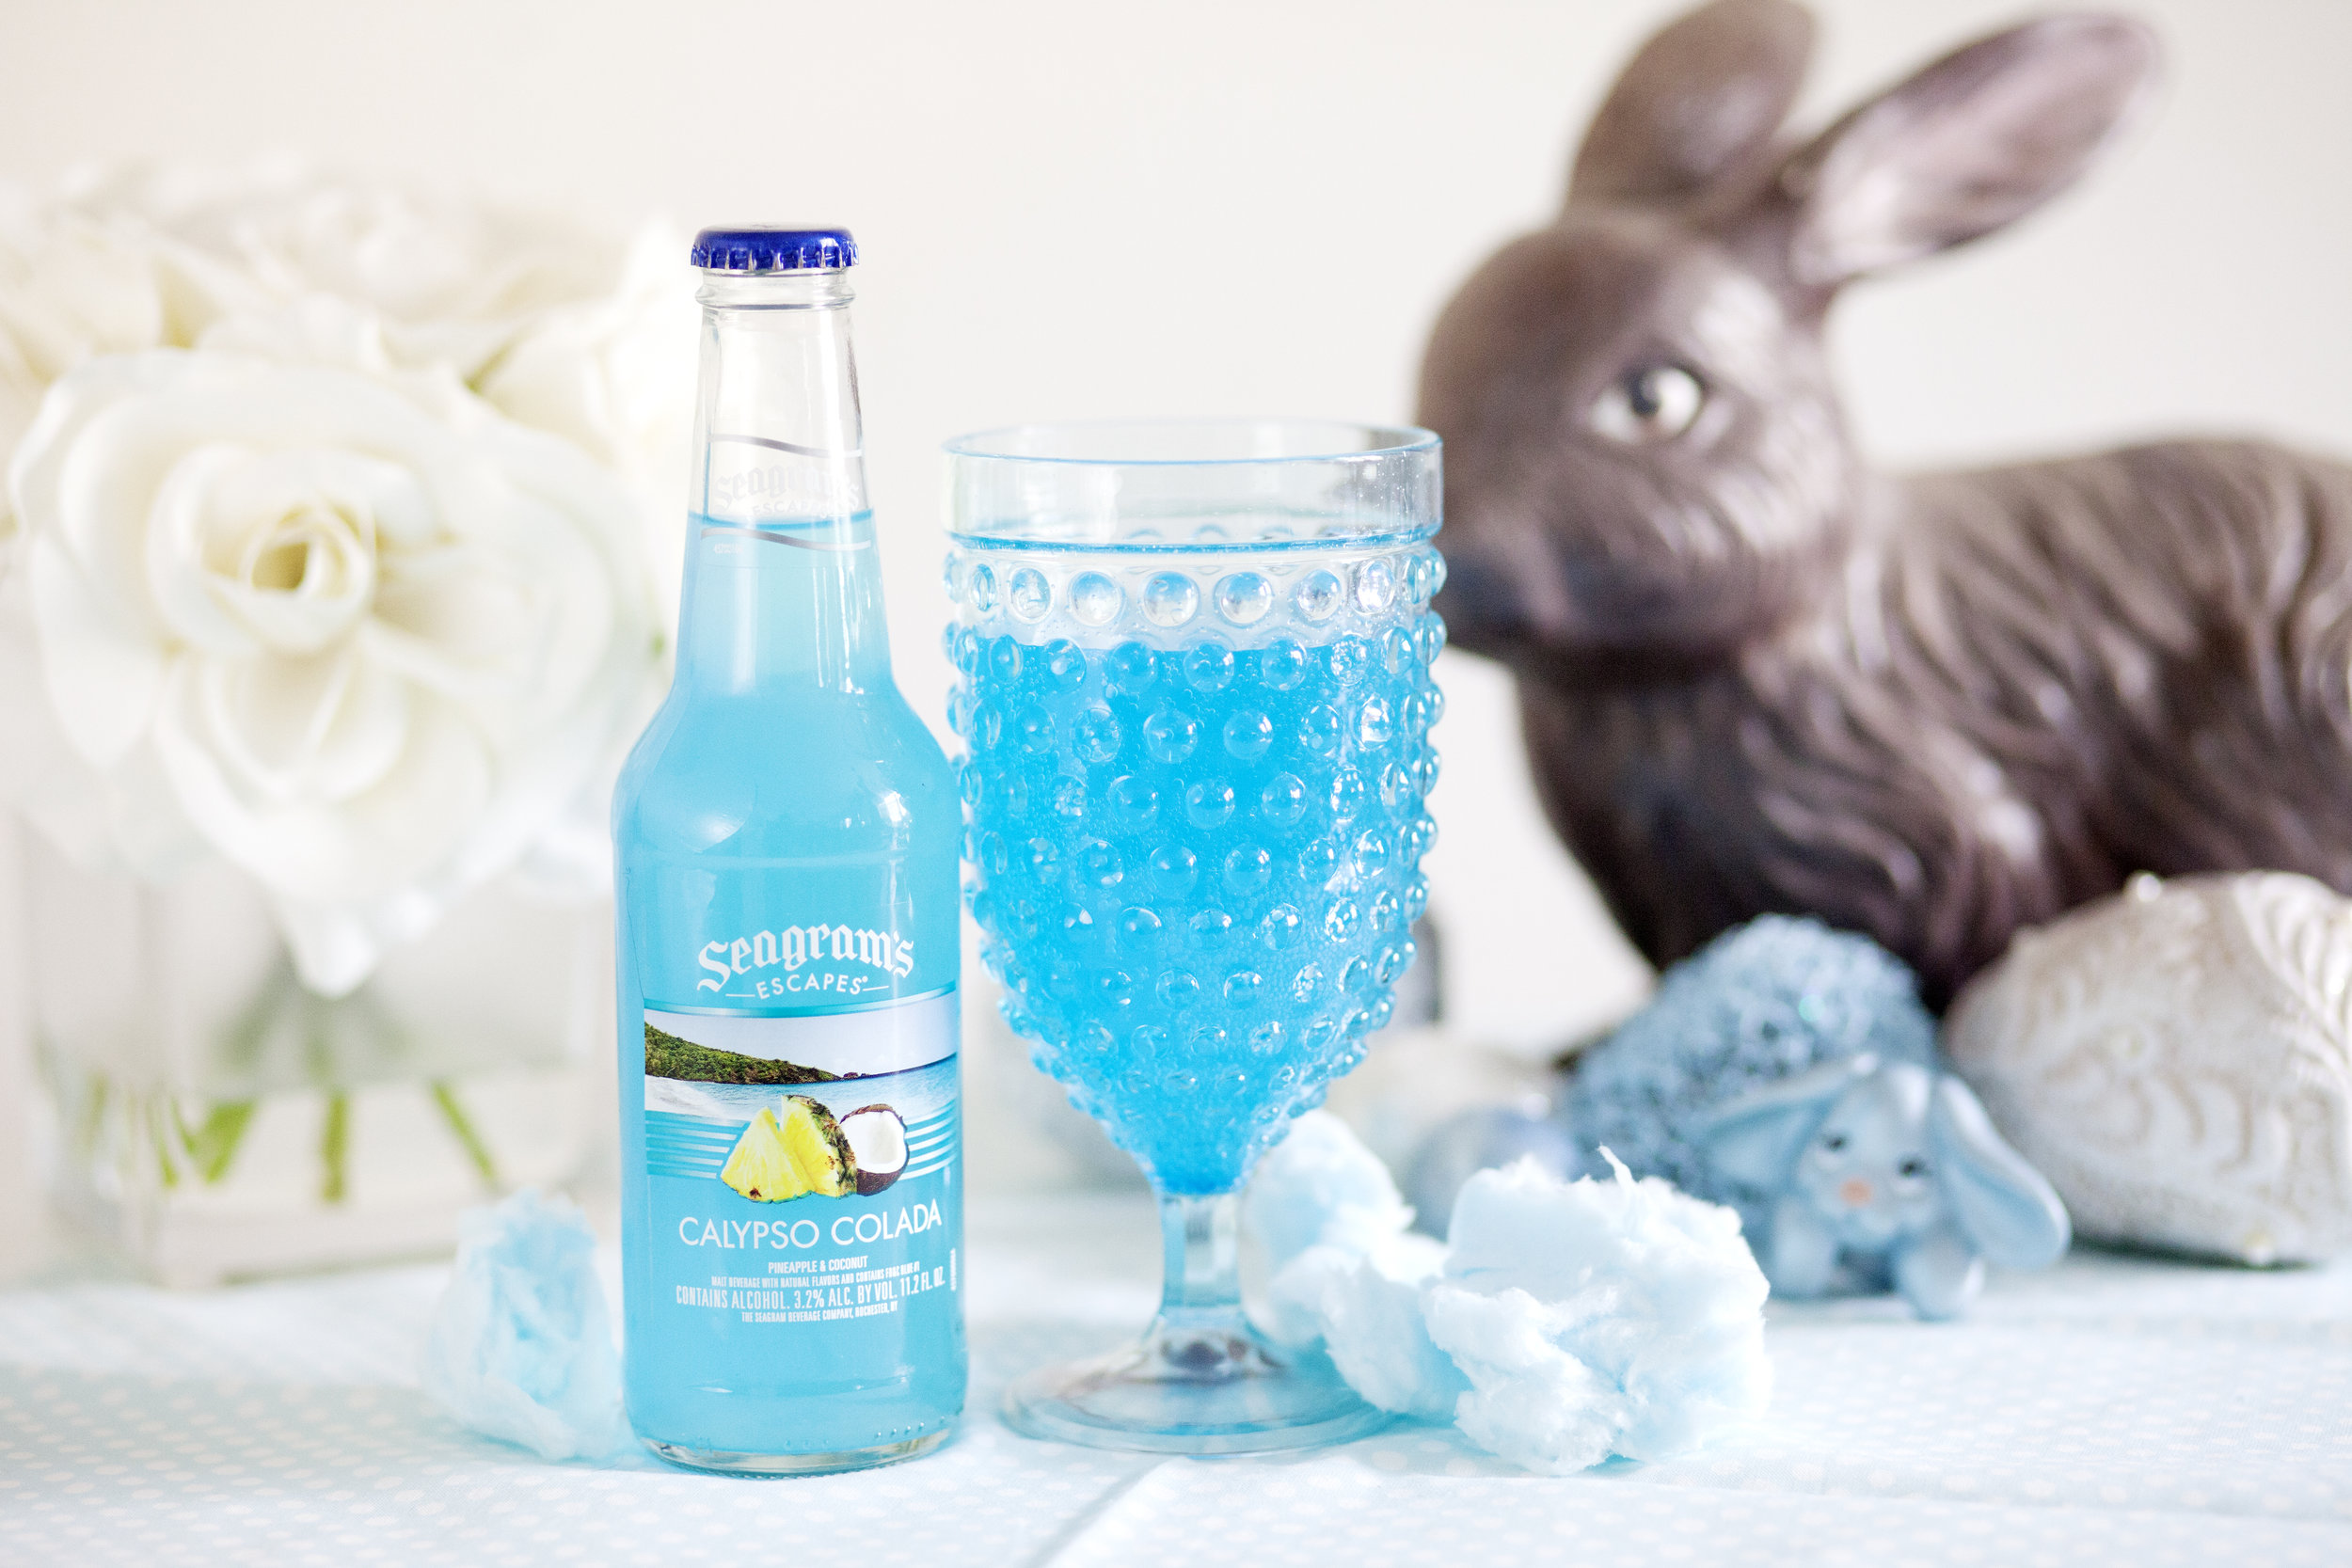 Seagram's Escapes Easter Cocktails Calypso Colada on The Gilded Bellini